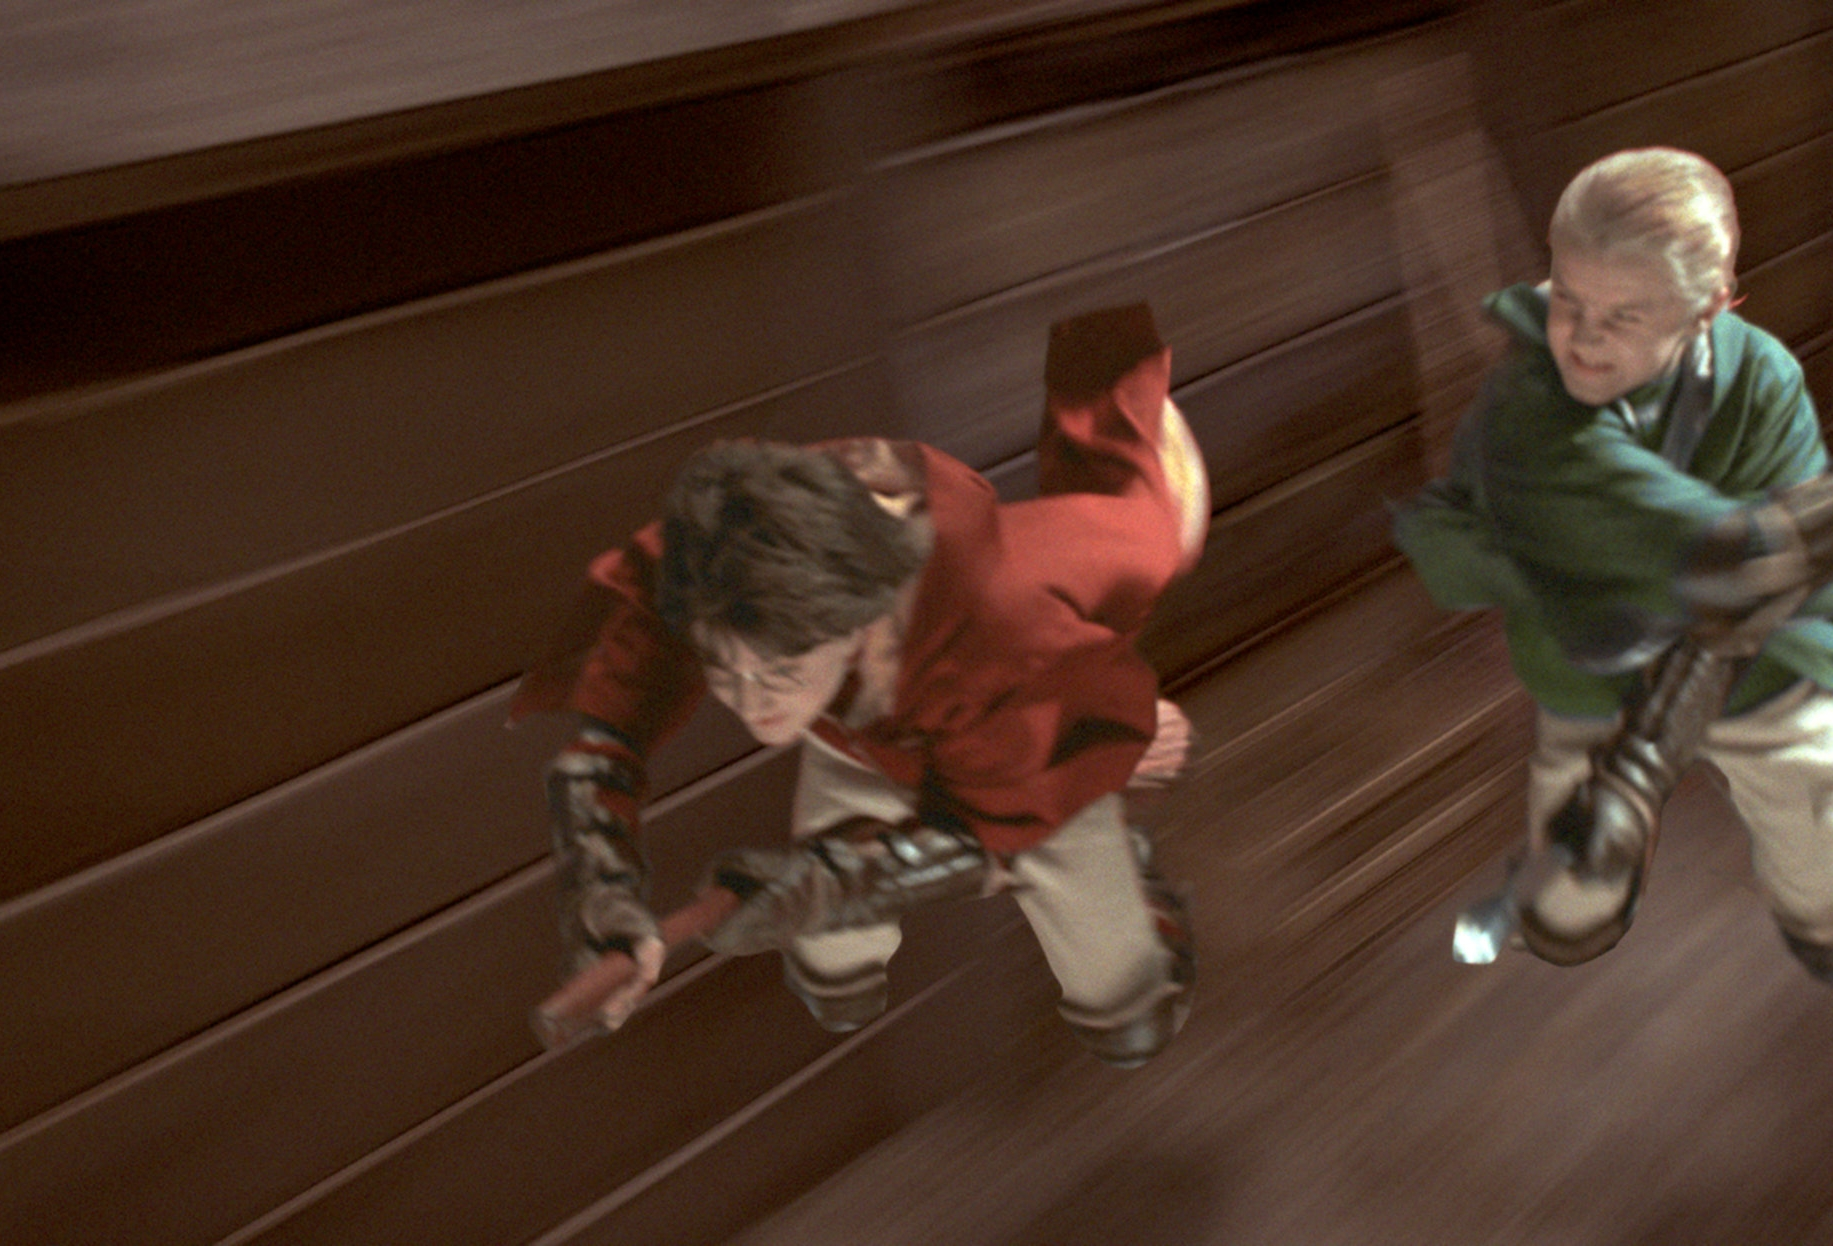 Harry and Draco race to the snitch in a quidditch match